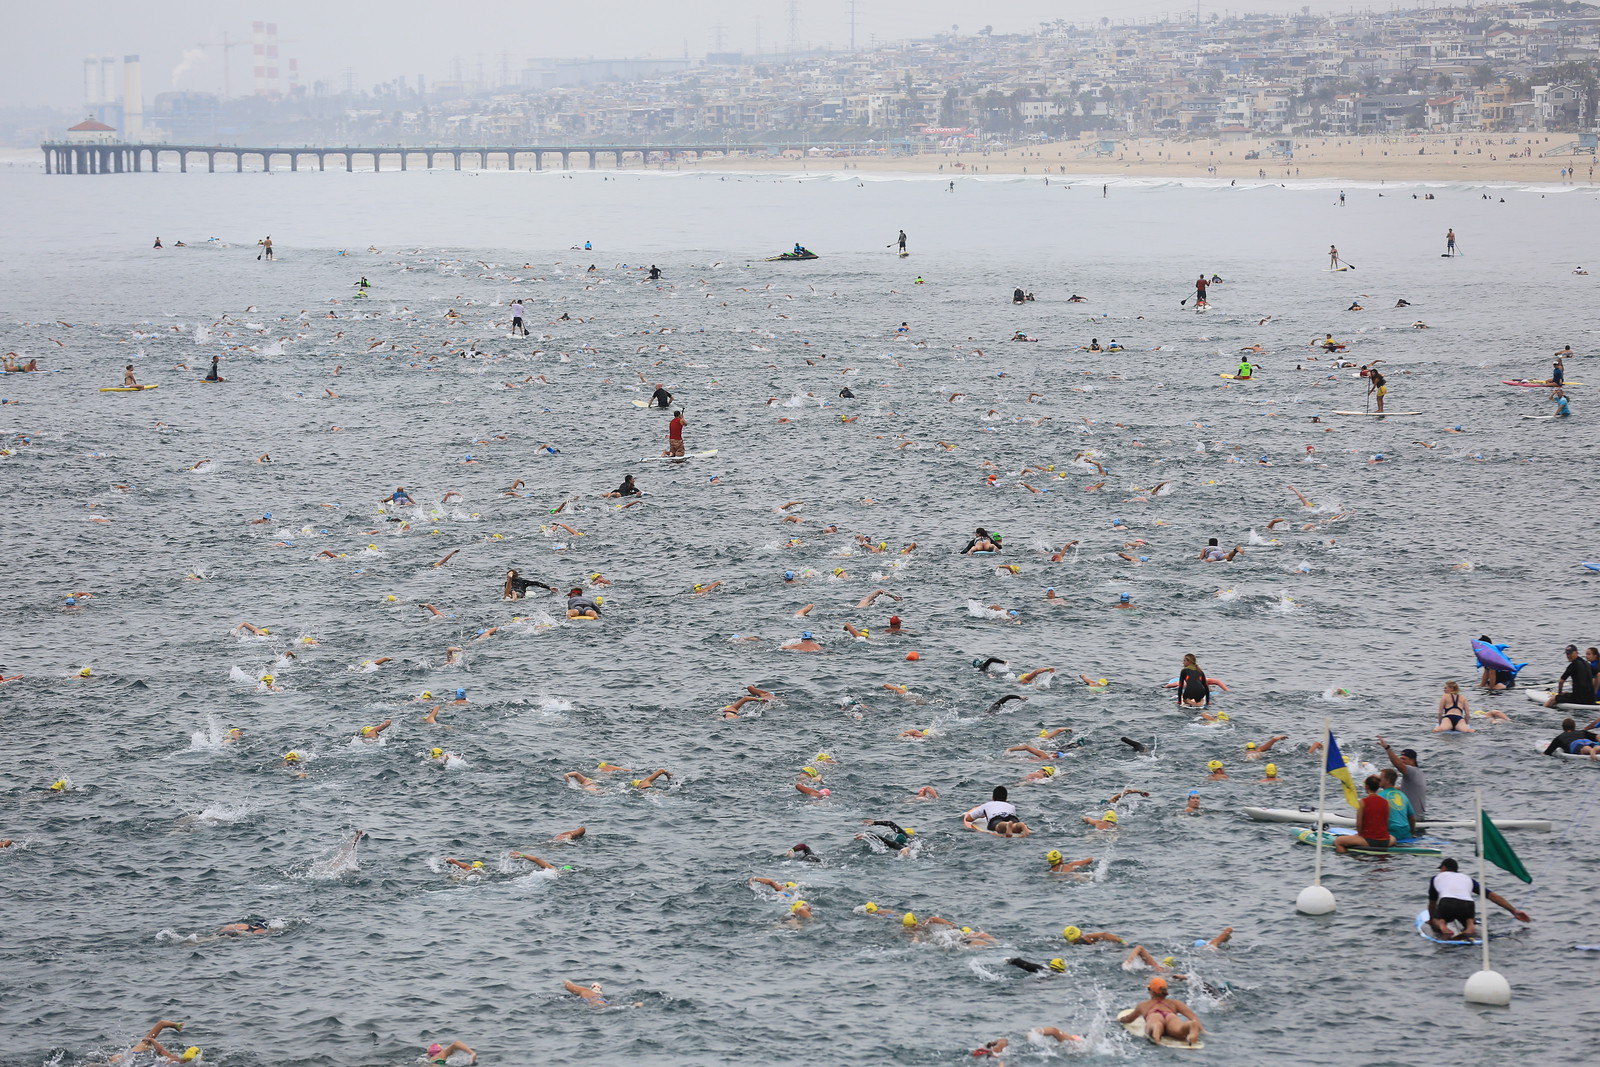 Swimmers in 2016 race